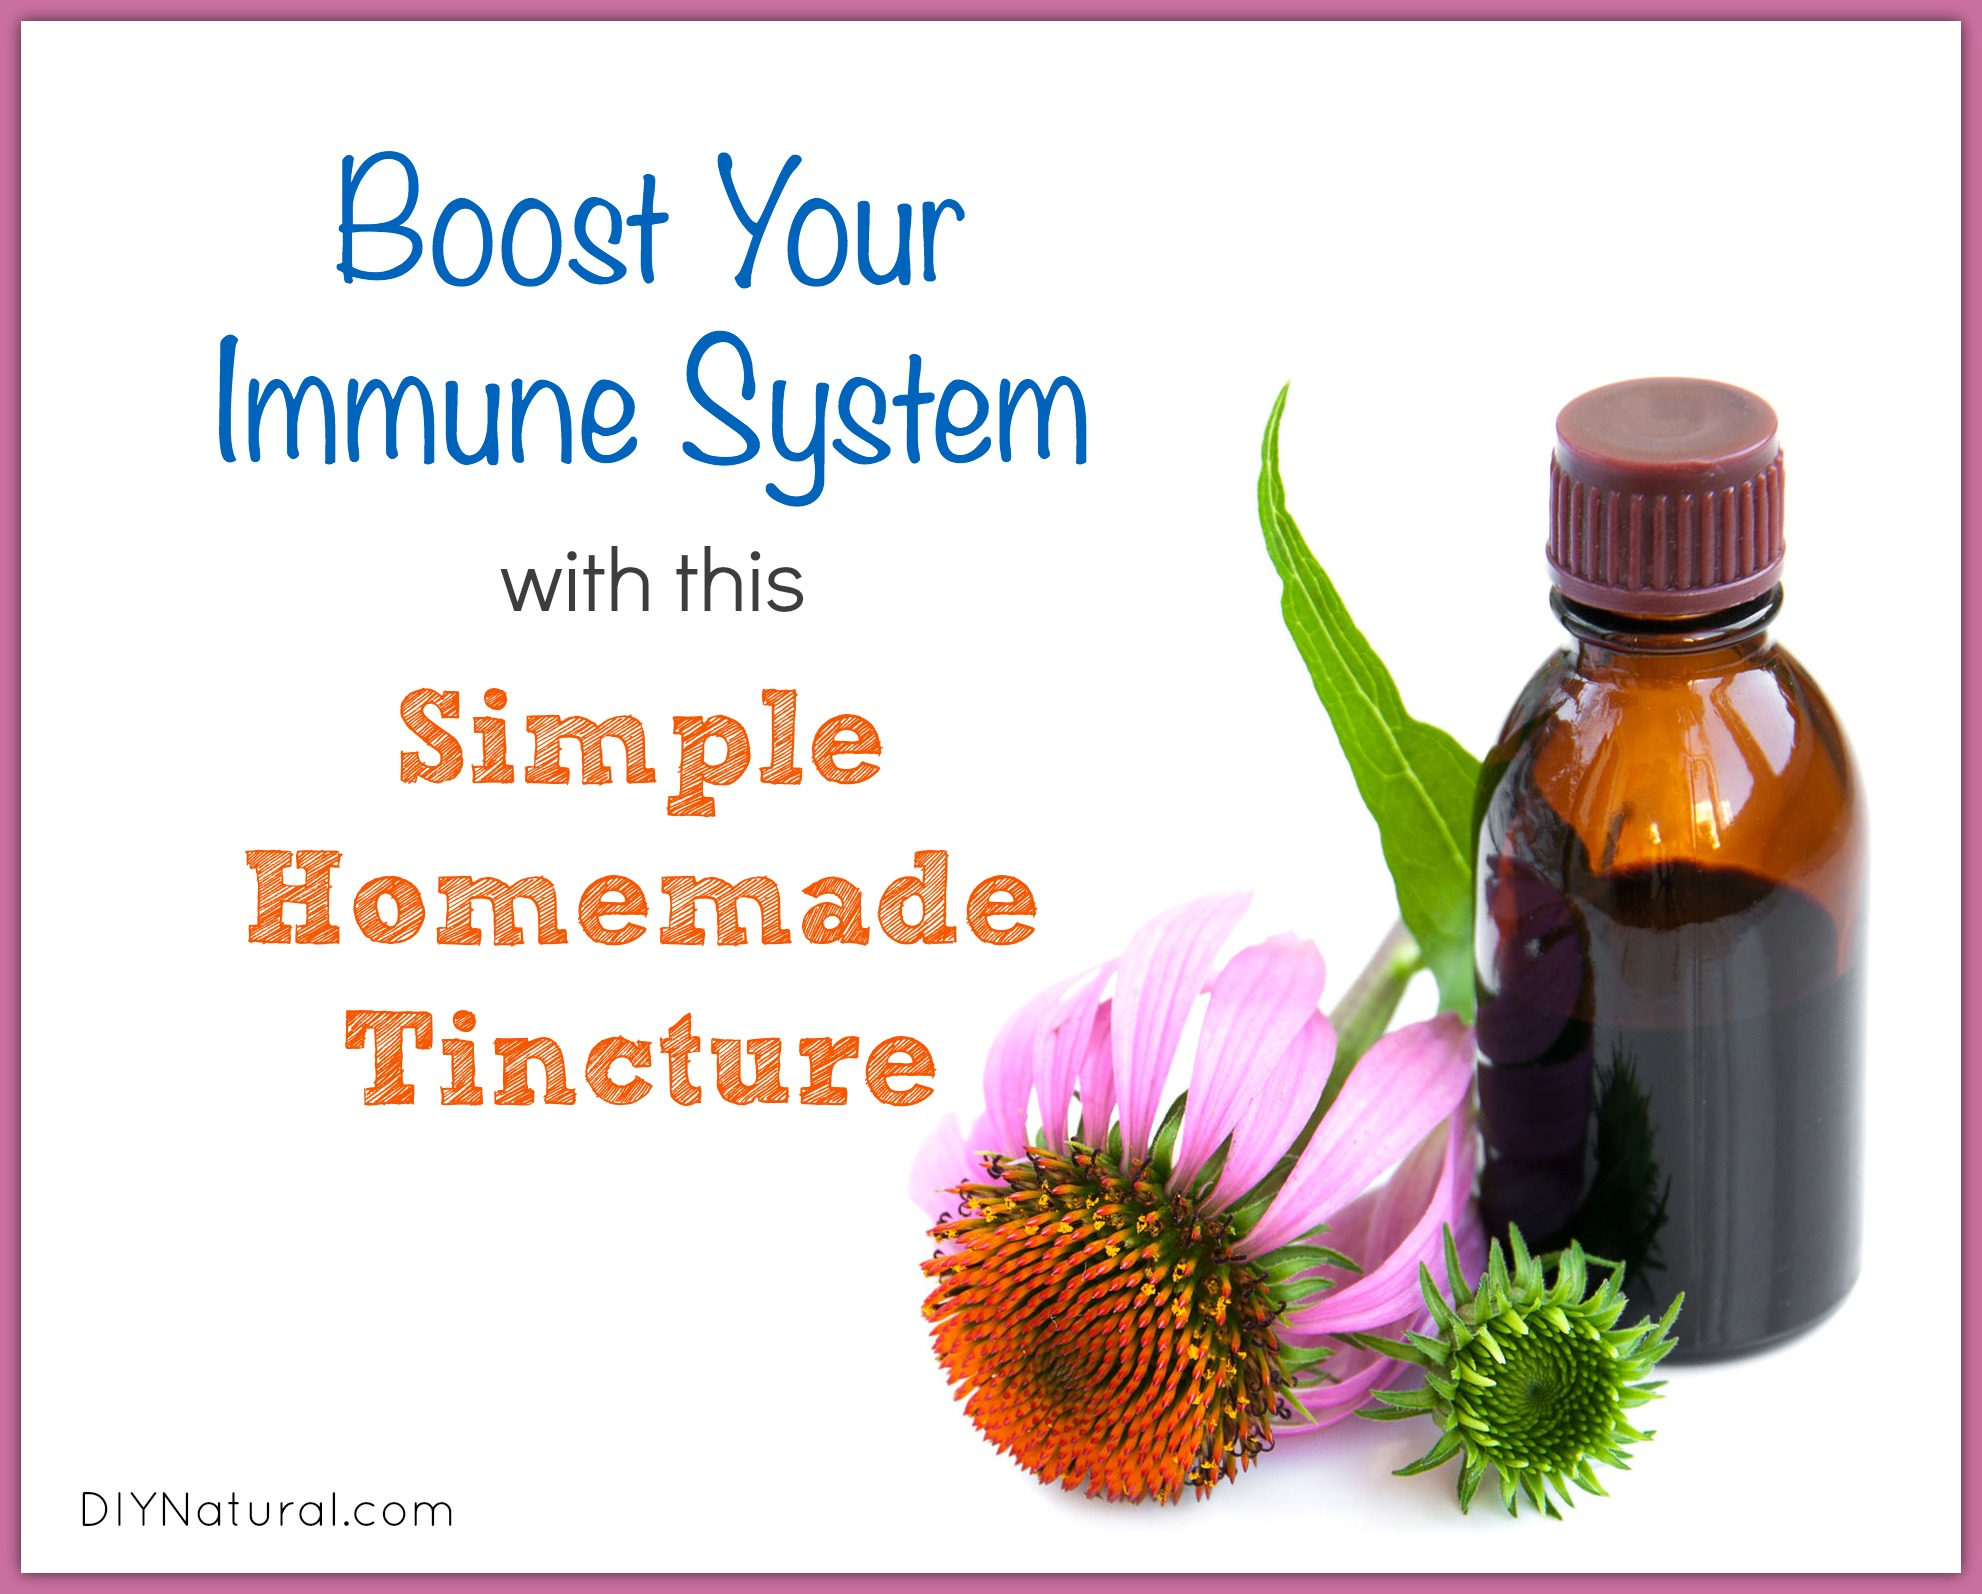 How To Boost Immune System With This Homemade Tincture